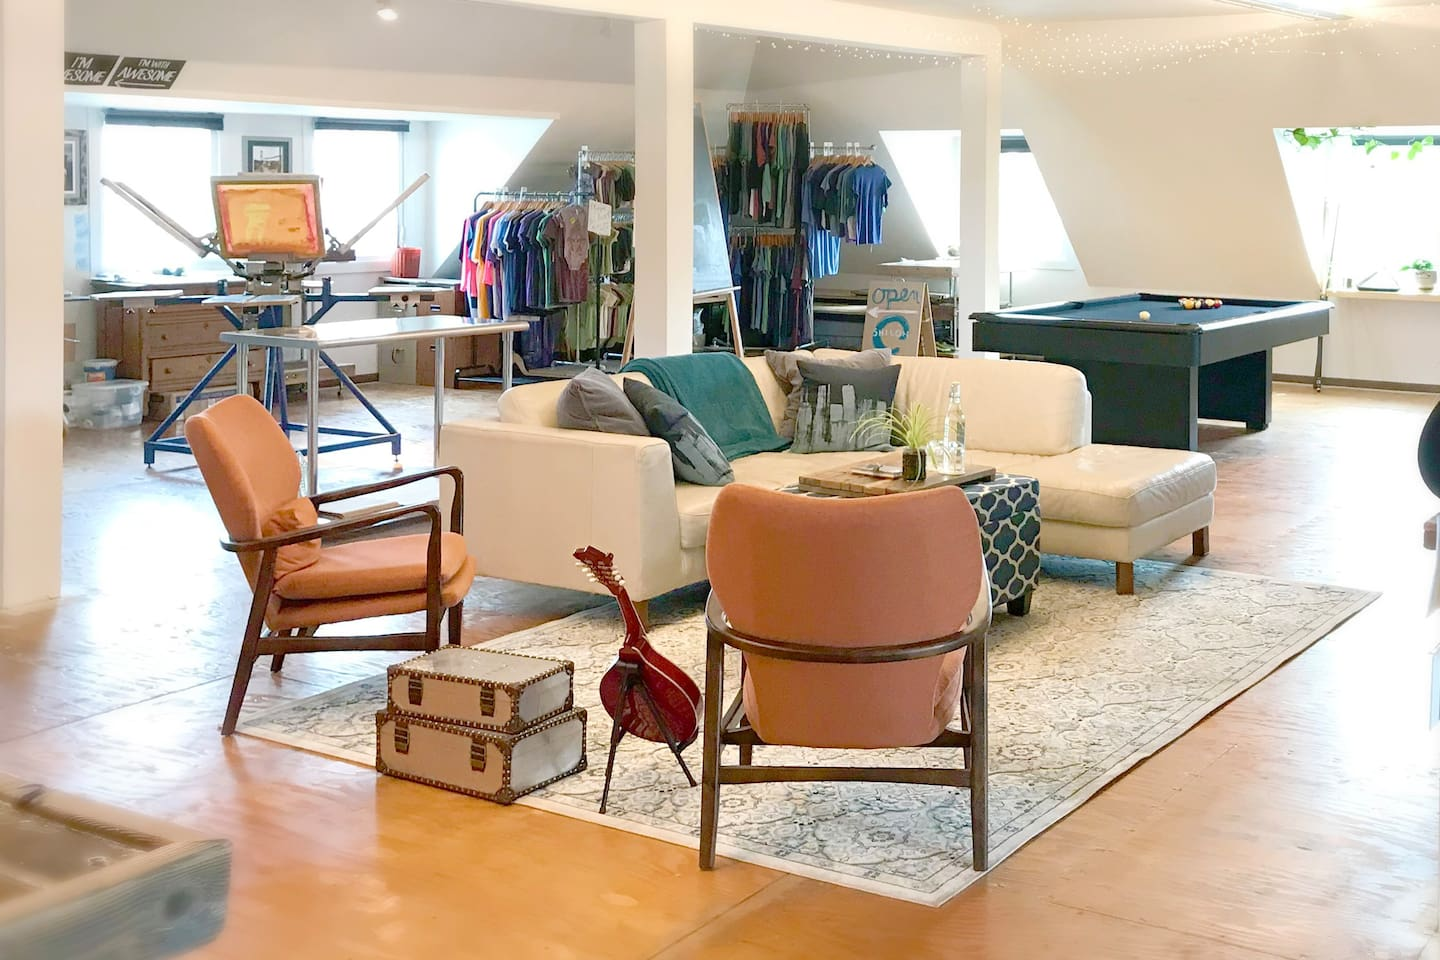 Come and relax! Our spacious loft houses a pool table, comfy living room, 2 sleeping areas, our screen printing press, and our many work spaces.